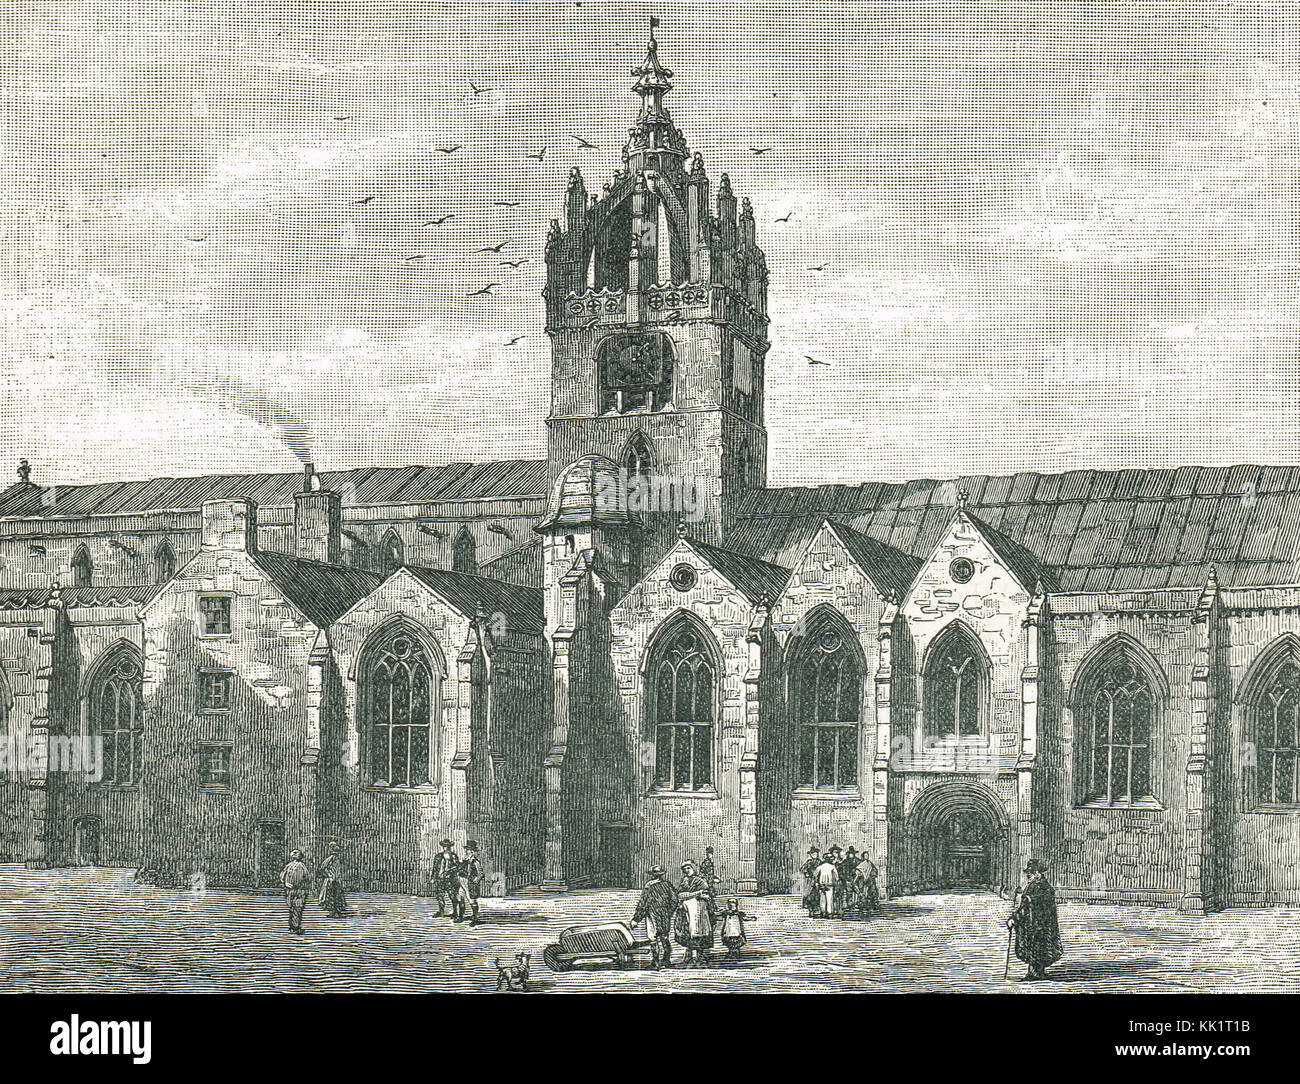 St Giles Church, Edinburgh in the 17th Century - Stock Image